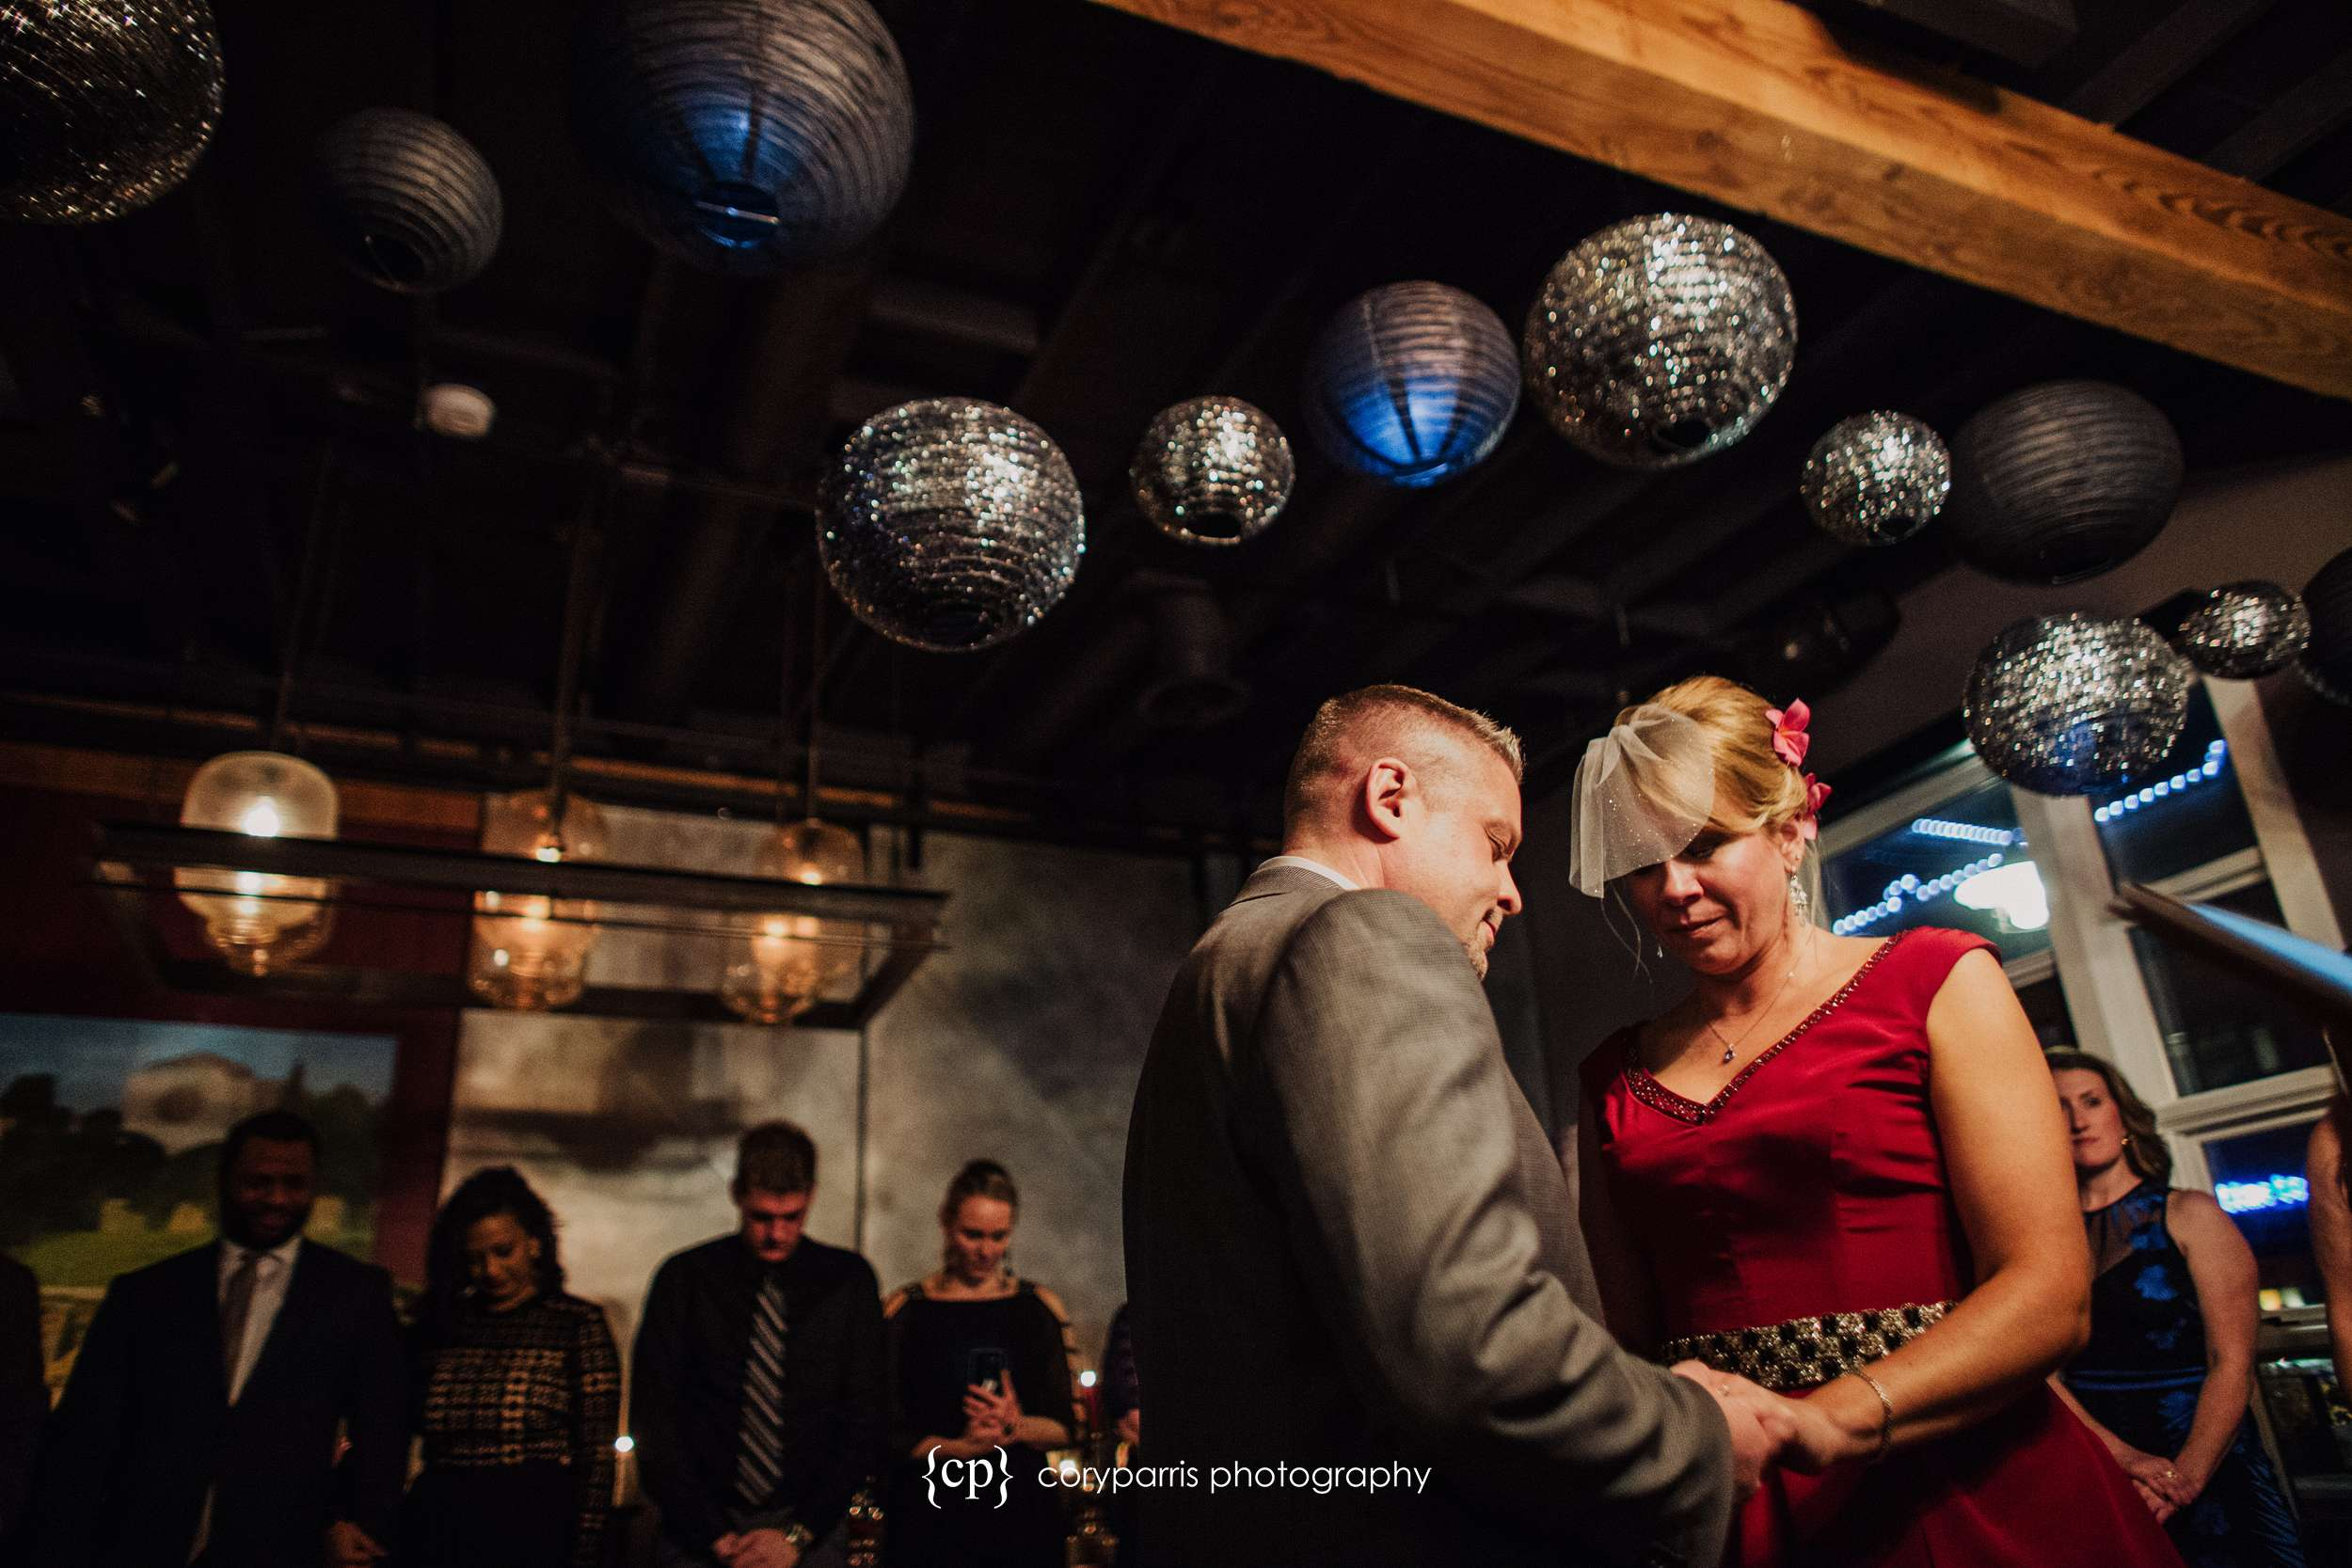 Tanea and Jeff's wedding at Beecher's Loft in Seattle over Pike Place Market.